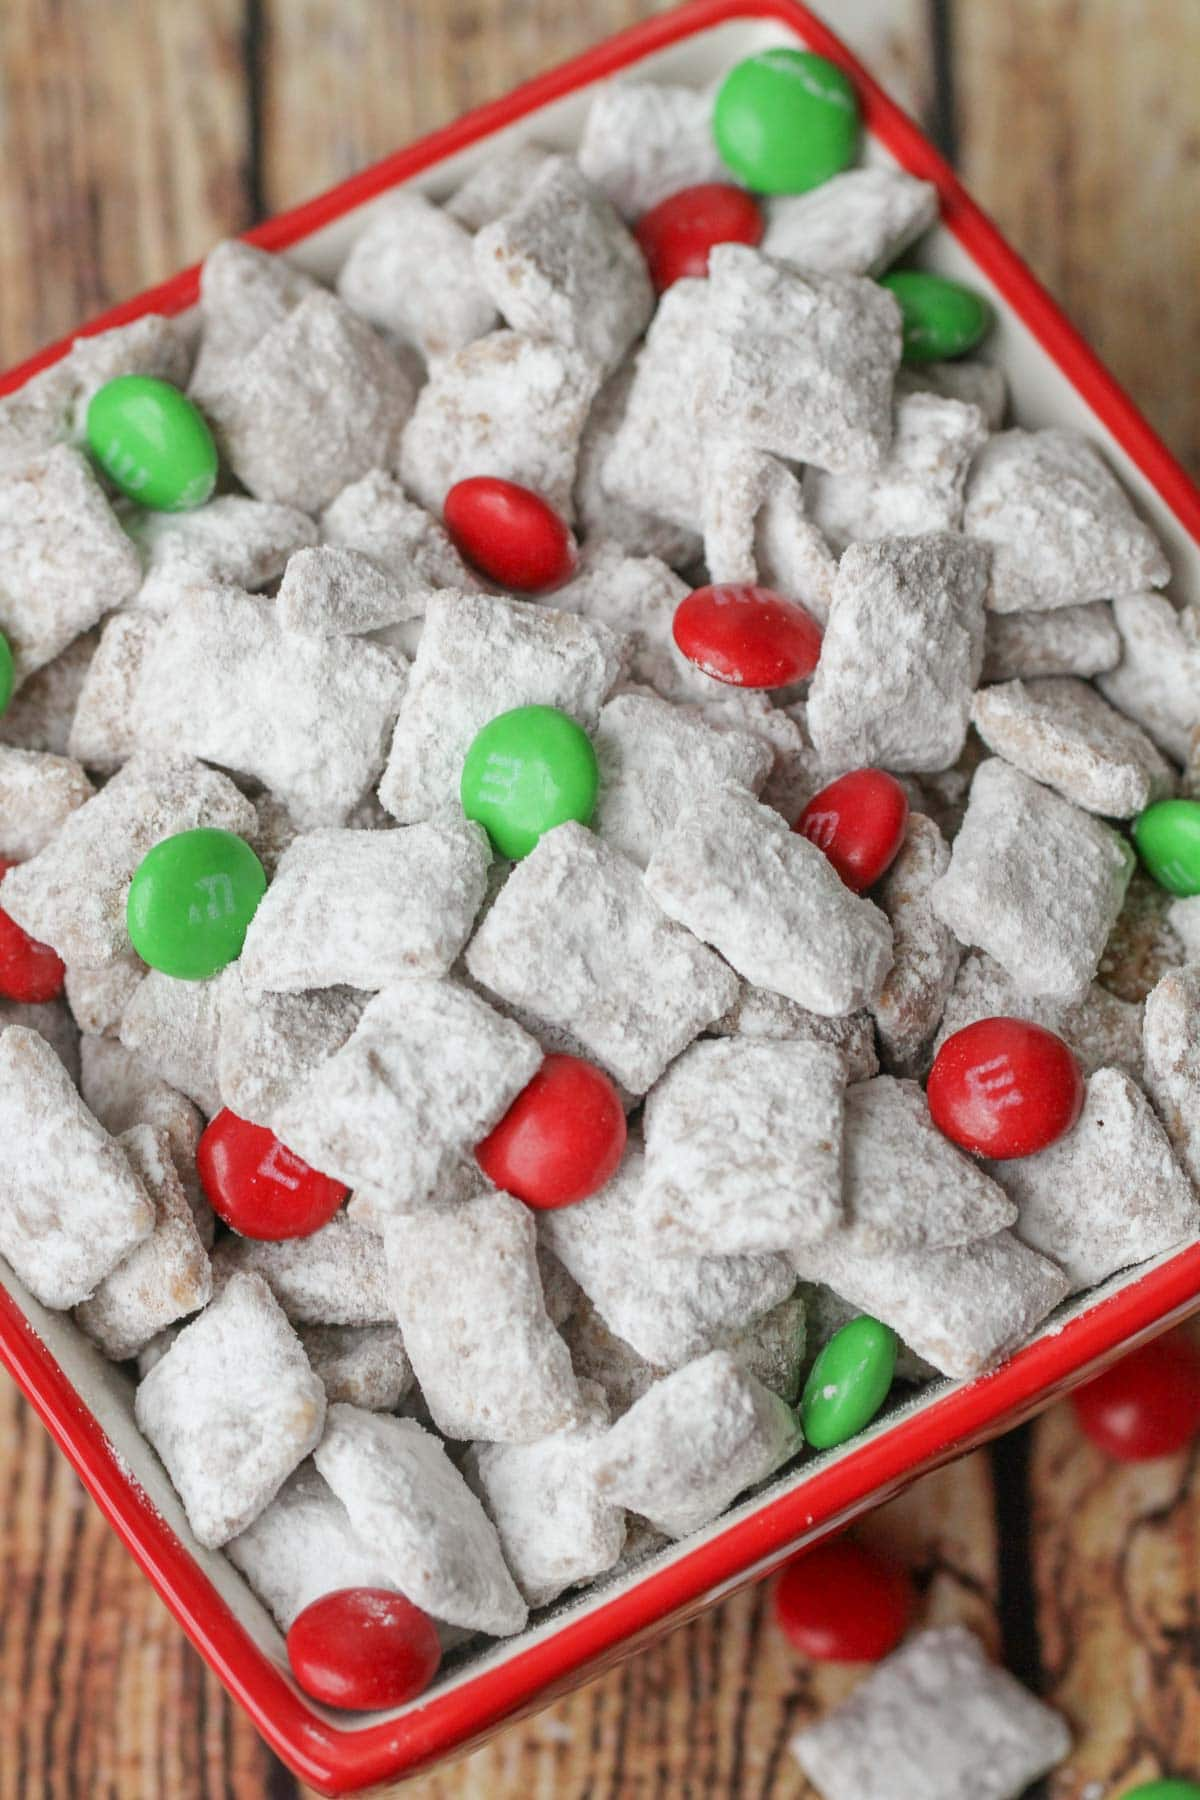 Christmas puppy Chow in a red bowl.